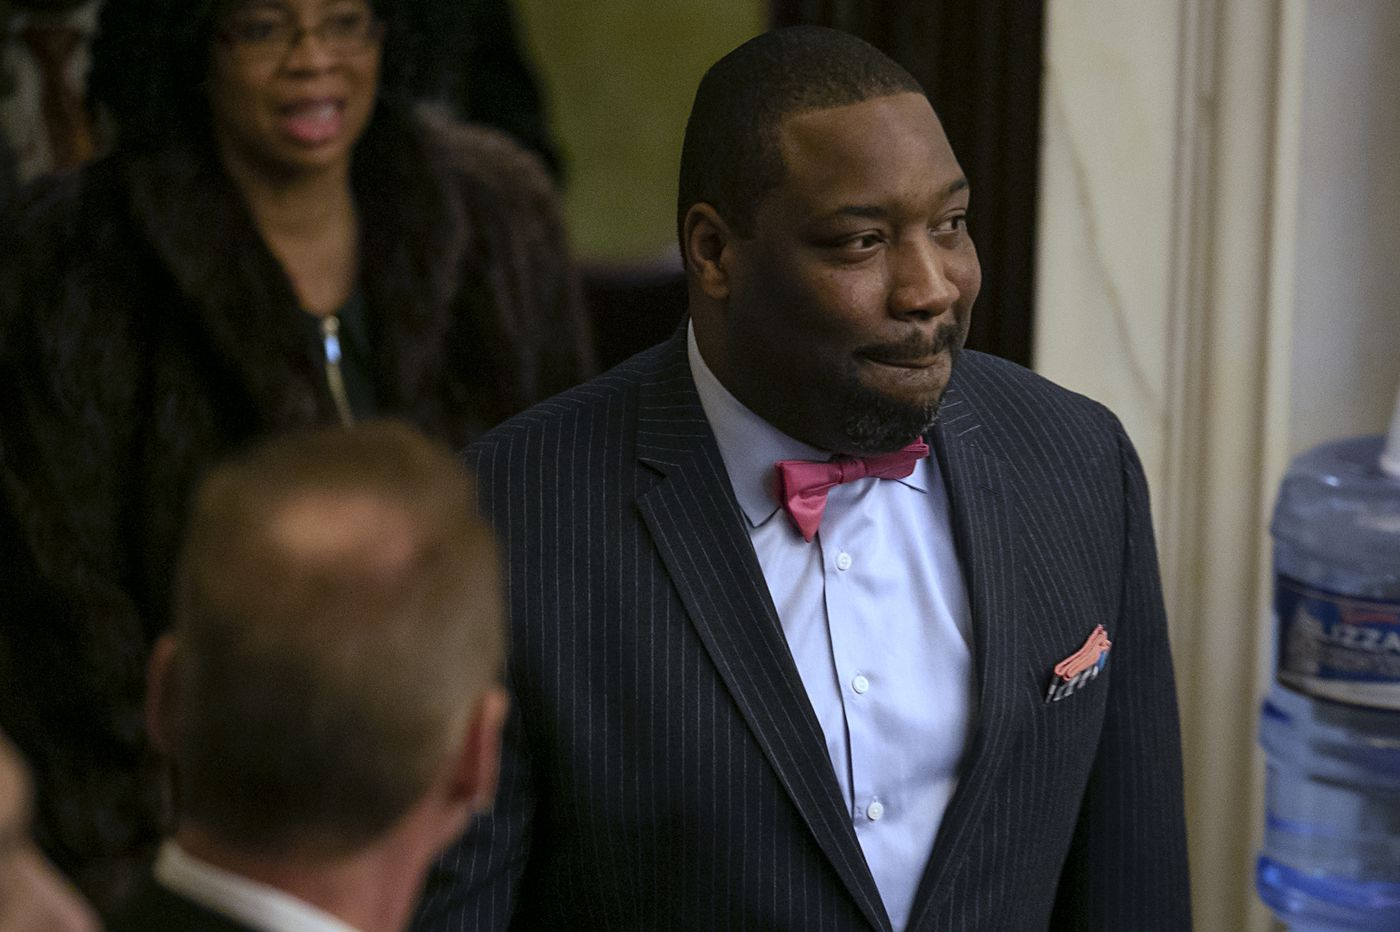 Kenyatta Johnson has new sway over zoning powers — which the feds just accused him of abusing